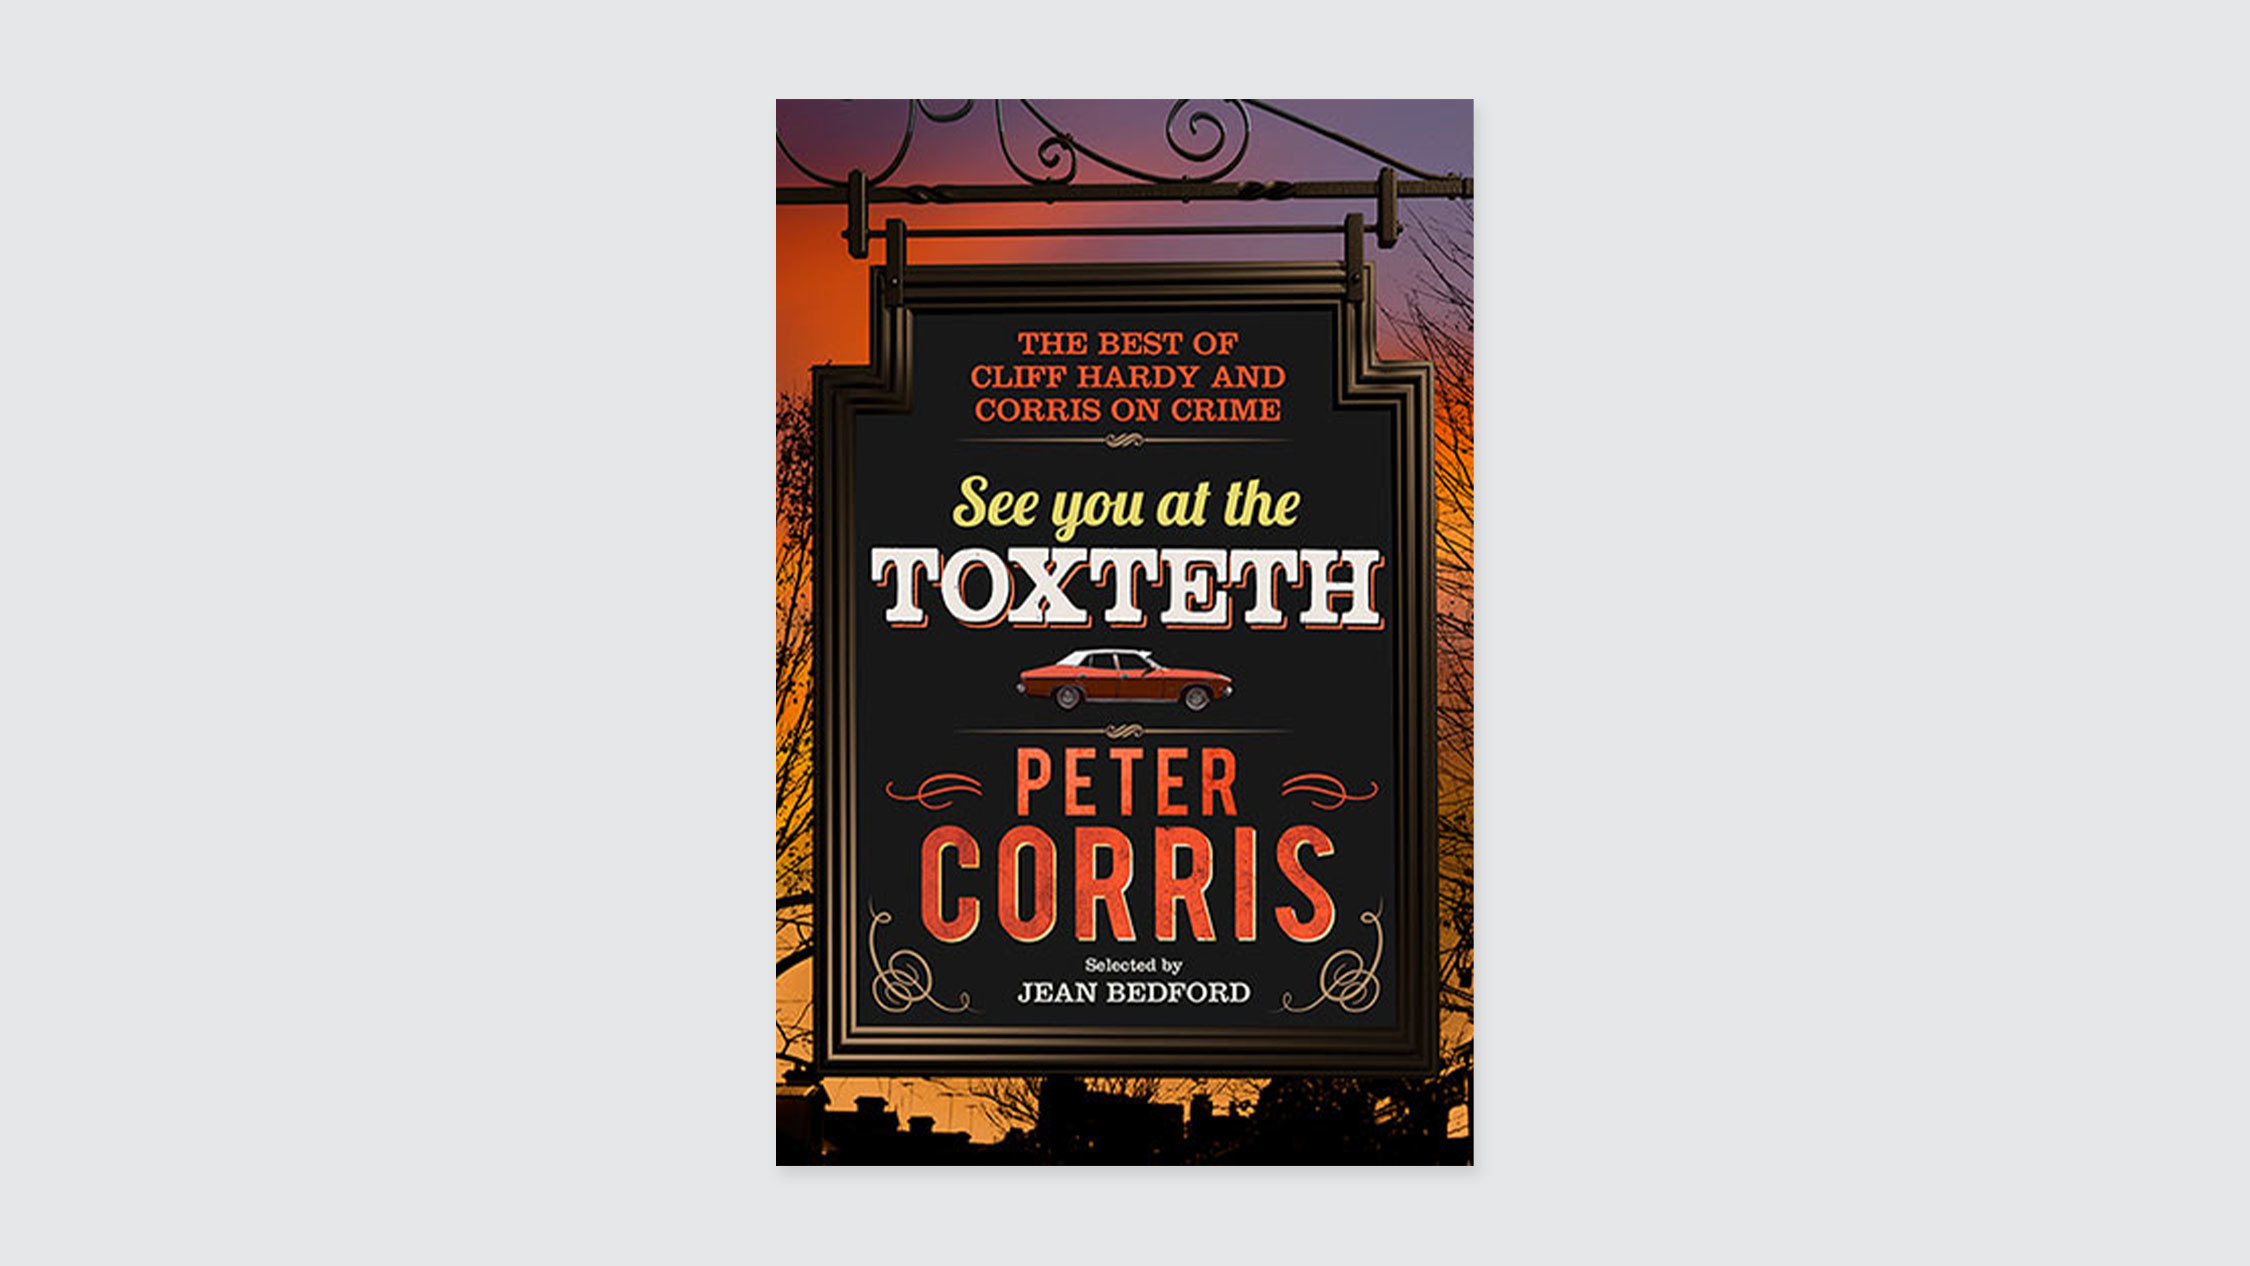 See You at the Toxteth, by Peter Corris, book cover